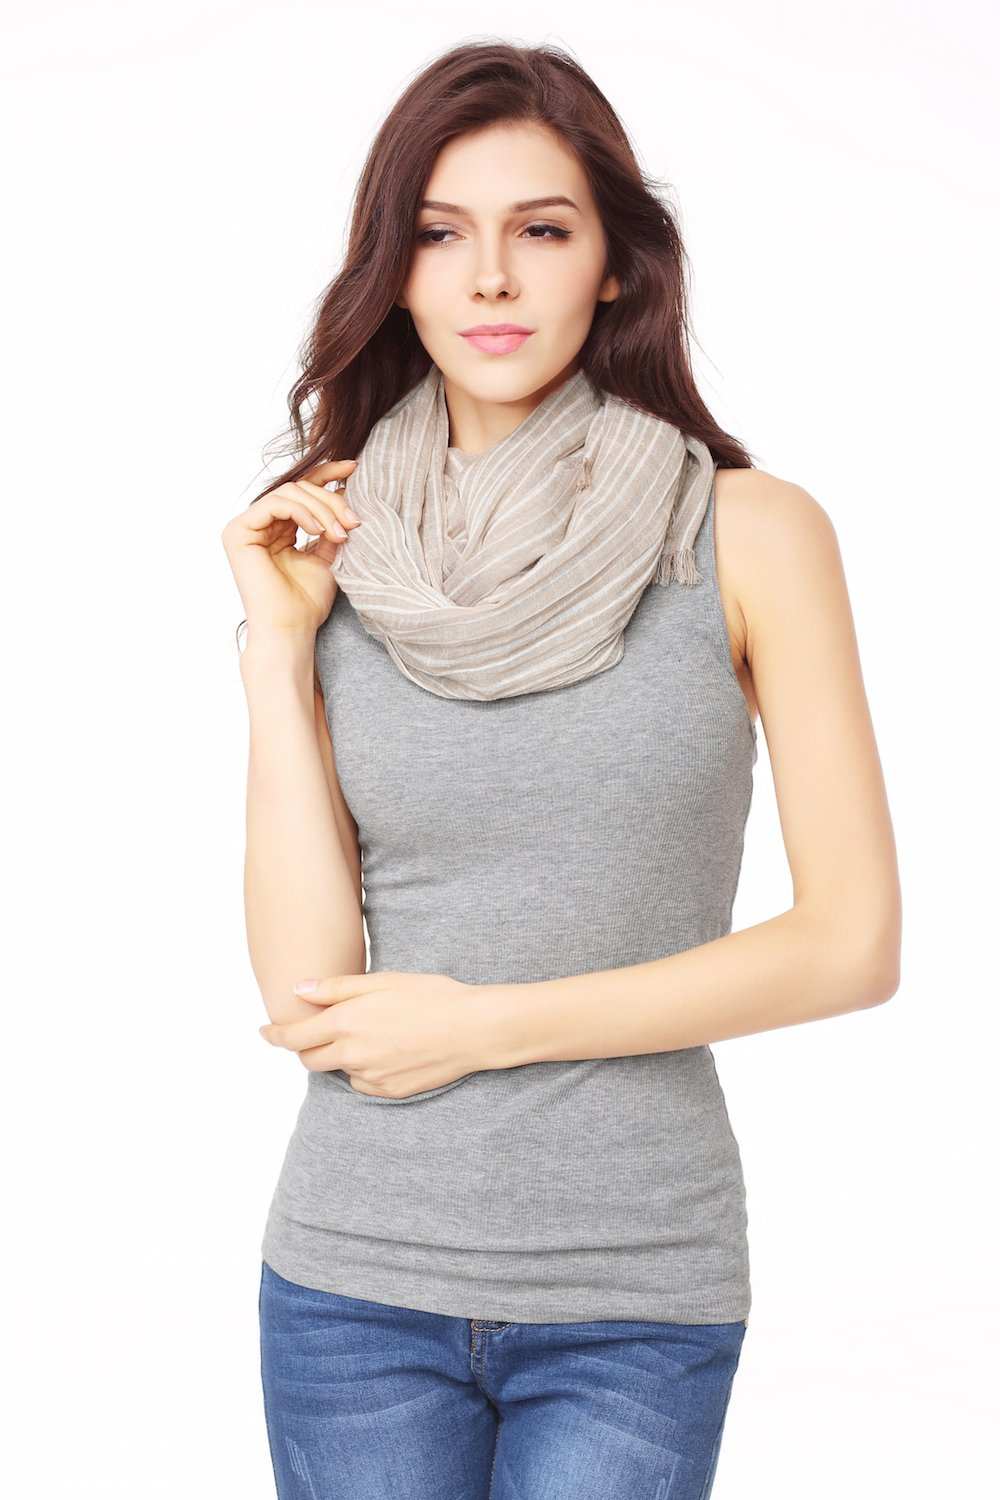 Cotton Scarf Shawl Wrap Soft Lightweight Scarves And Wraps For Men And Women. (Beige cream) by Jeelow (Image #4)